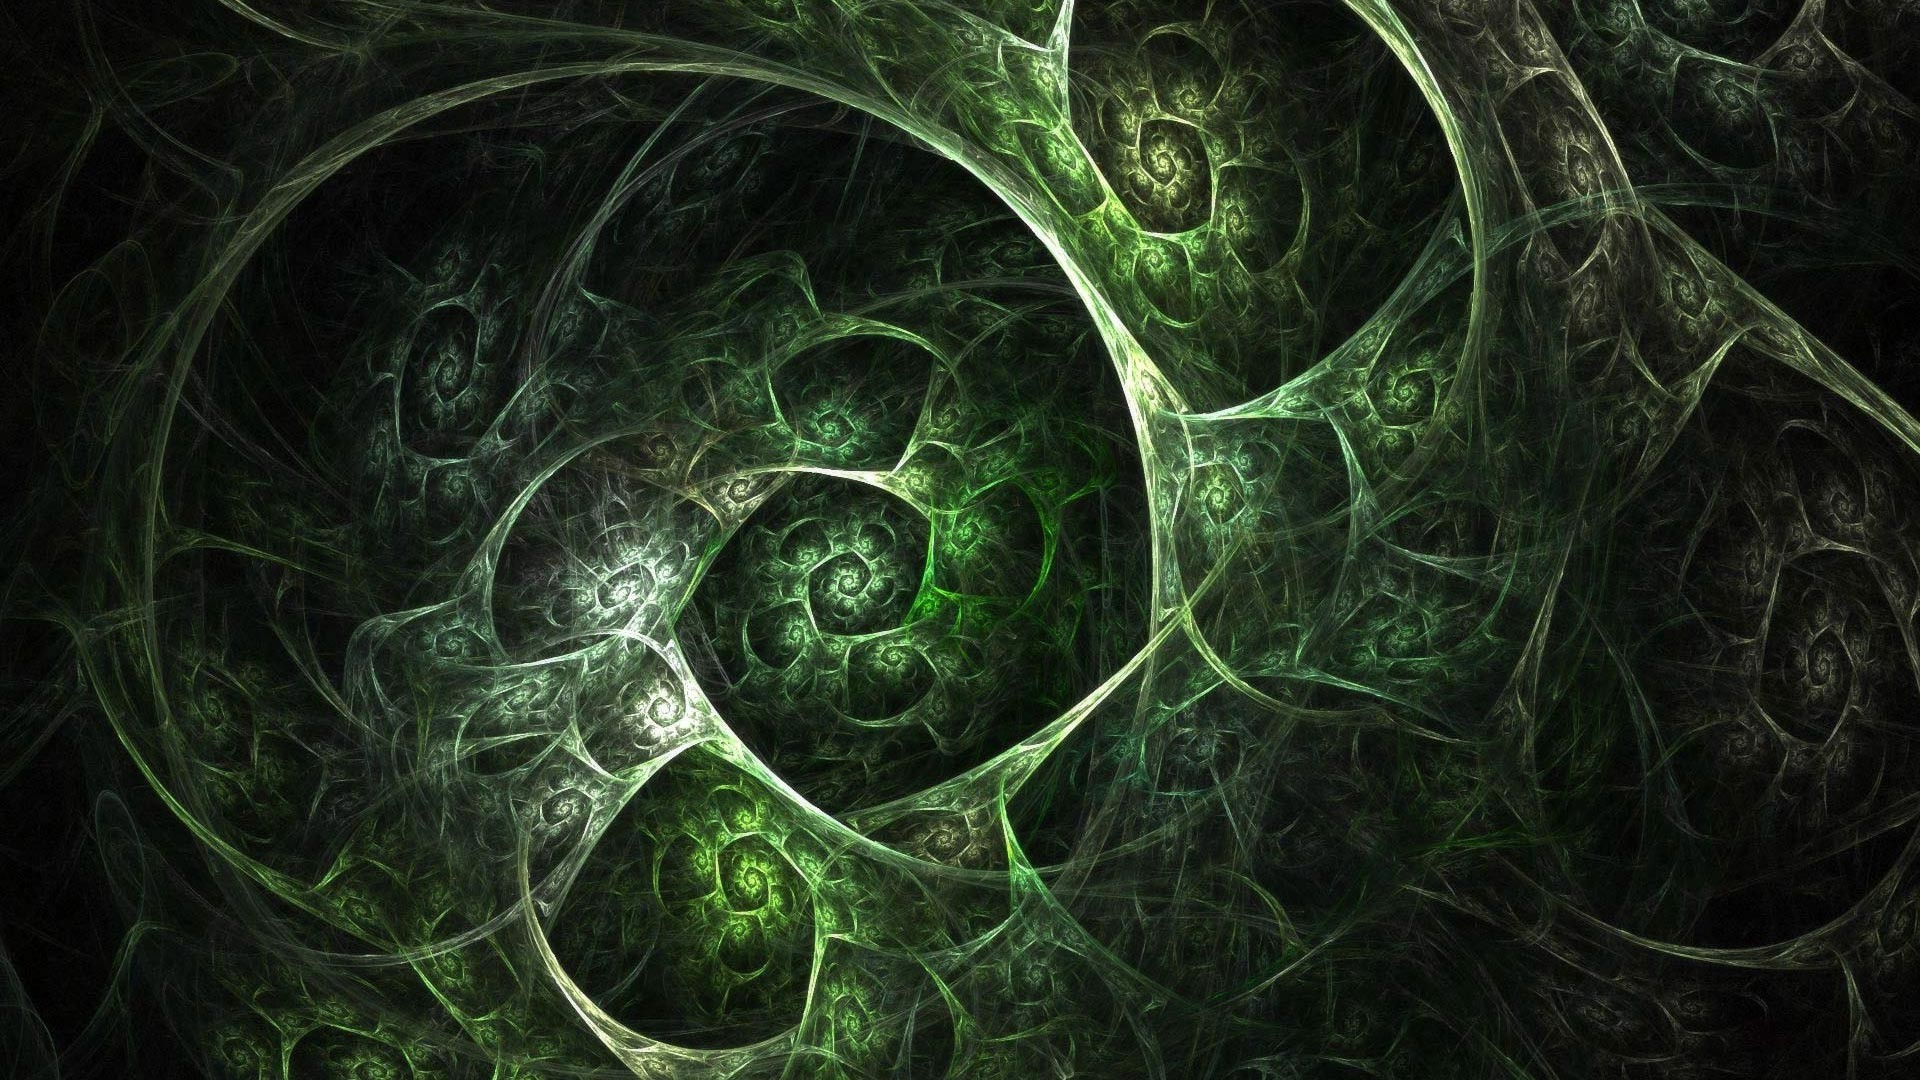 Black and Green Abstract Wallpaper